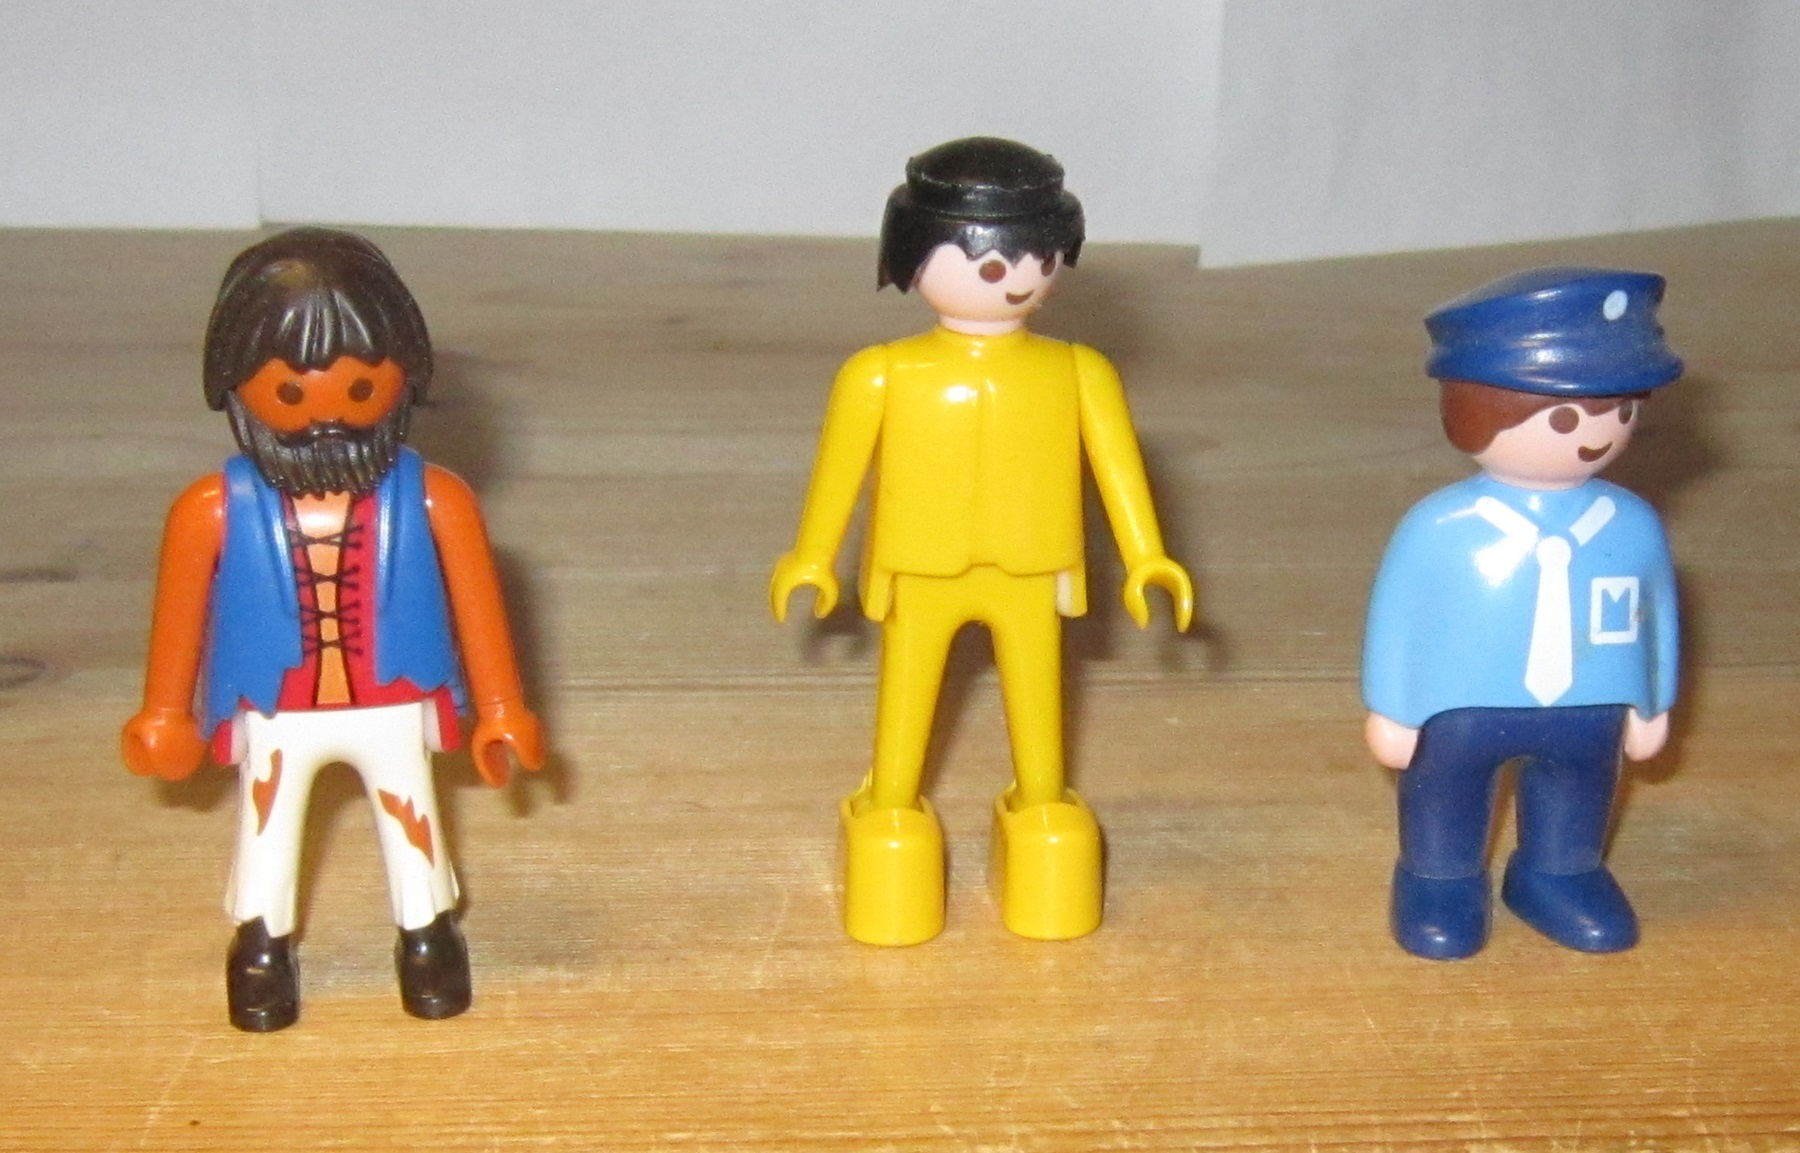 0100 Playmobil figurer